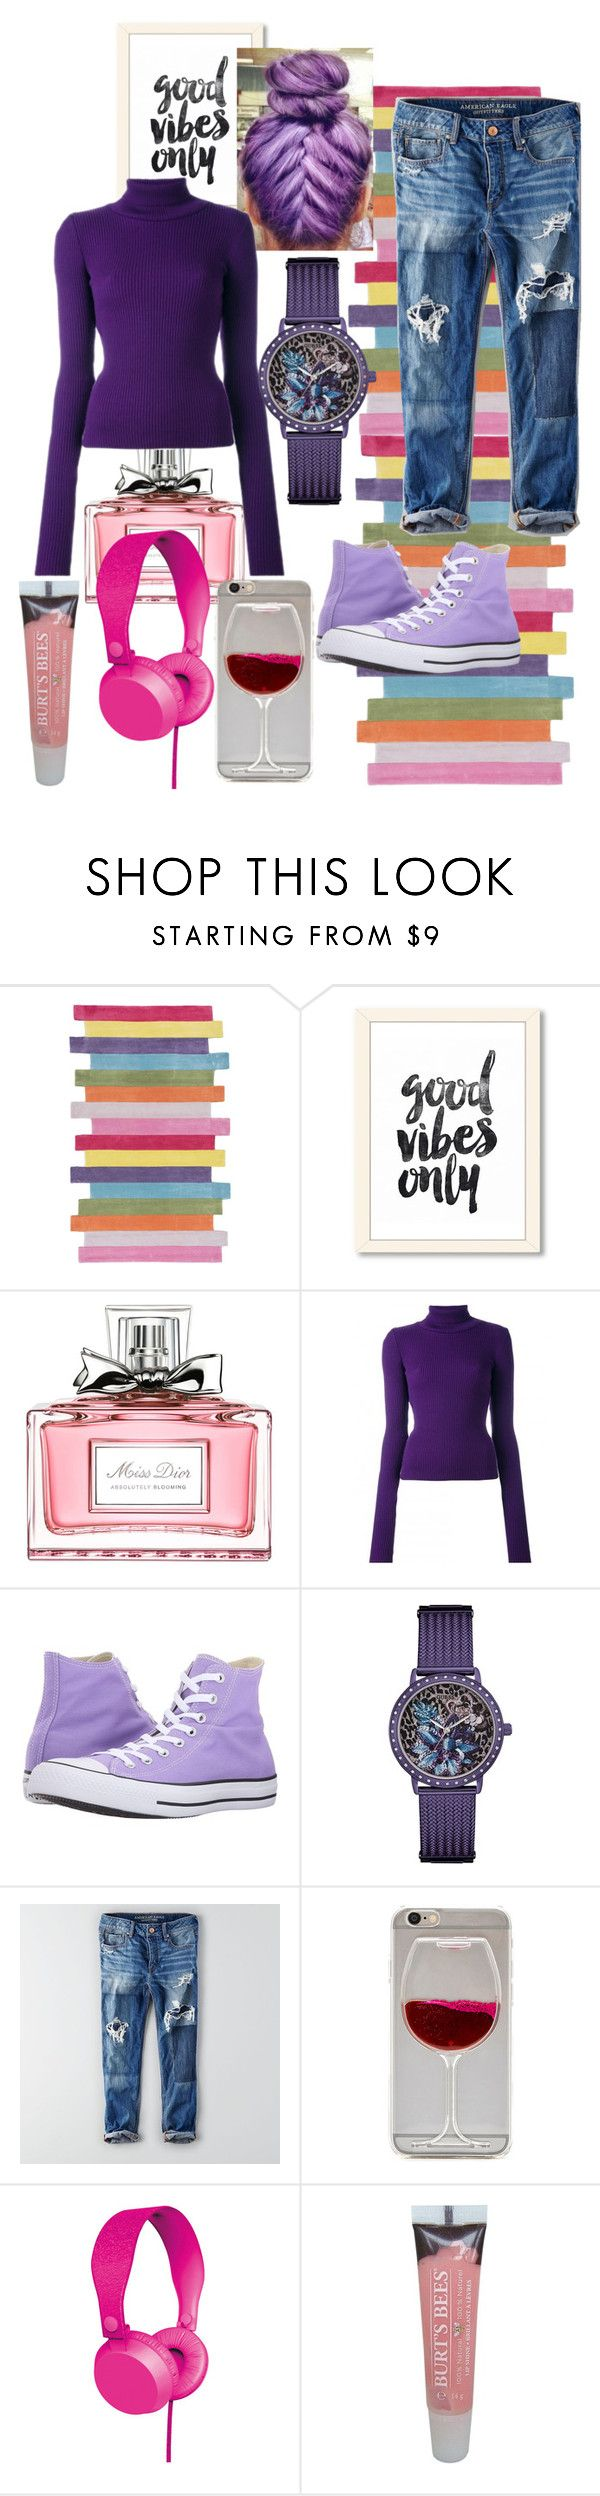 good vibes by lamoda on Polyvore featuring Jacquemus, American Eagle Outfitters, Converse, GUESS, Burt's Bees, Christian Dior and nuLOOM